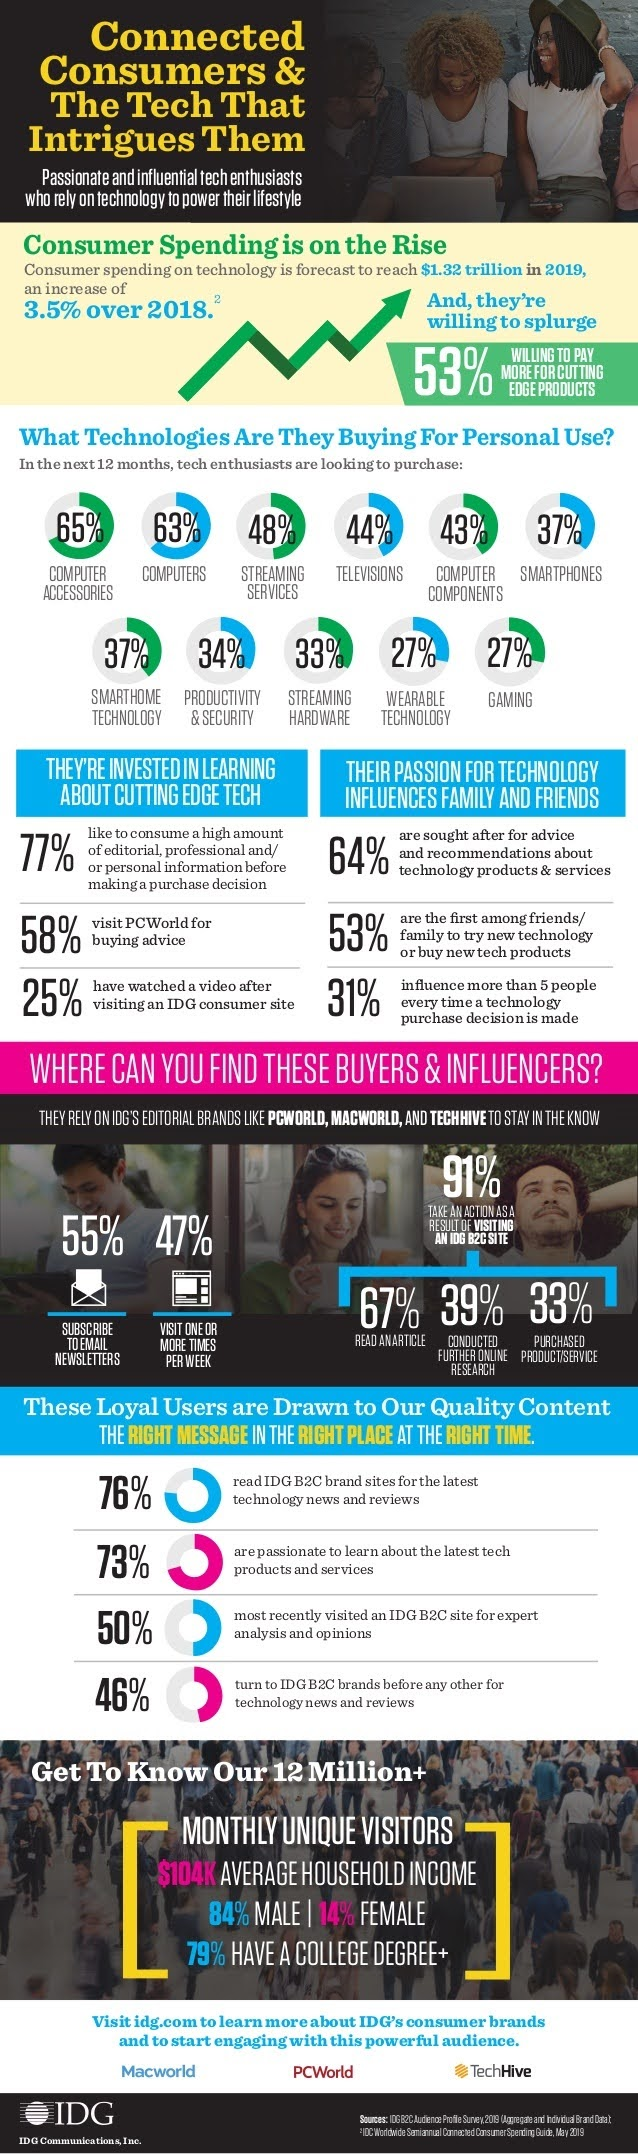 Connected Consumers & The Tech That Intrigues Them #infographic